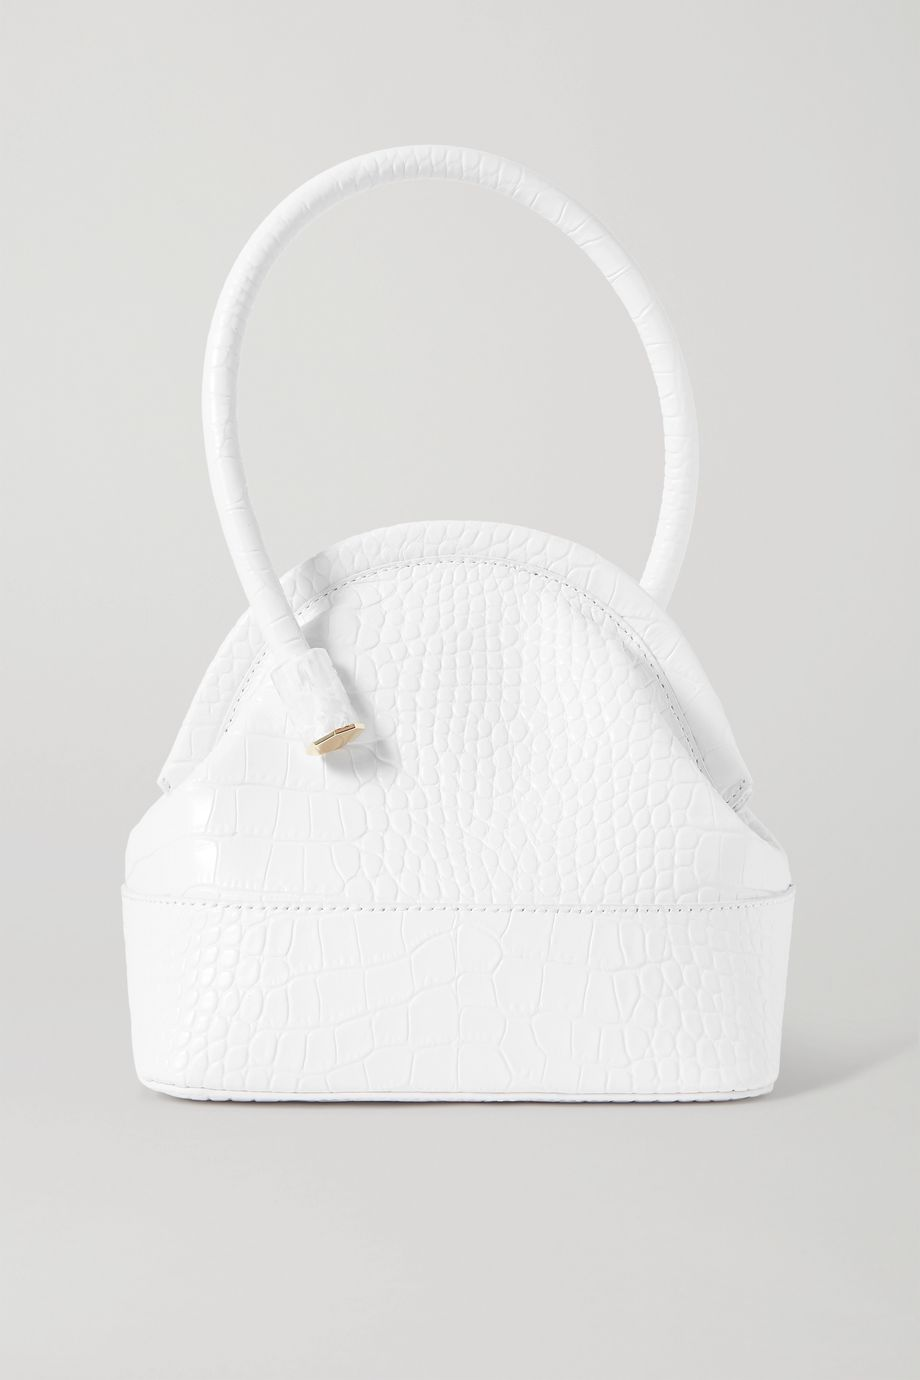 Louise Et Cie Isel croc-effect leather tote